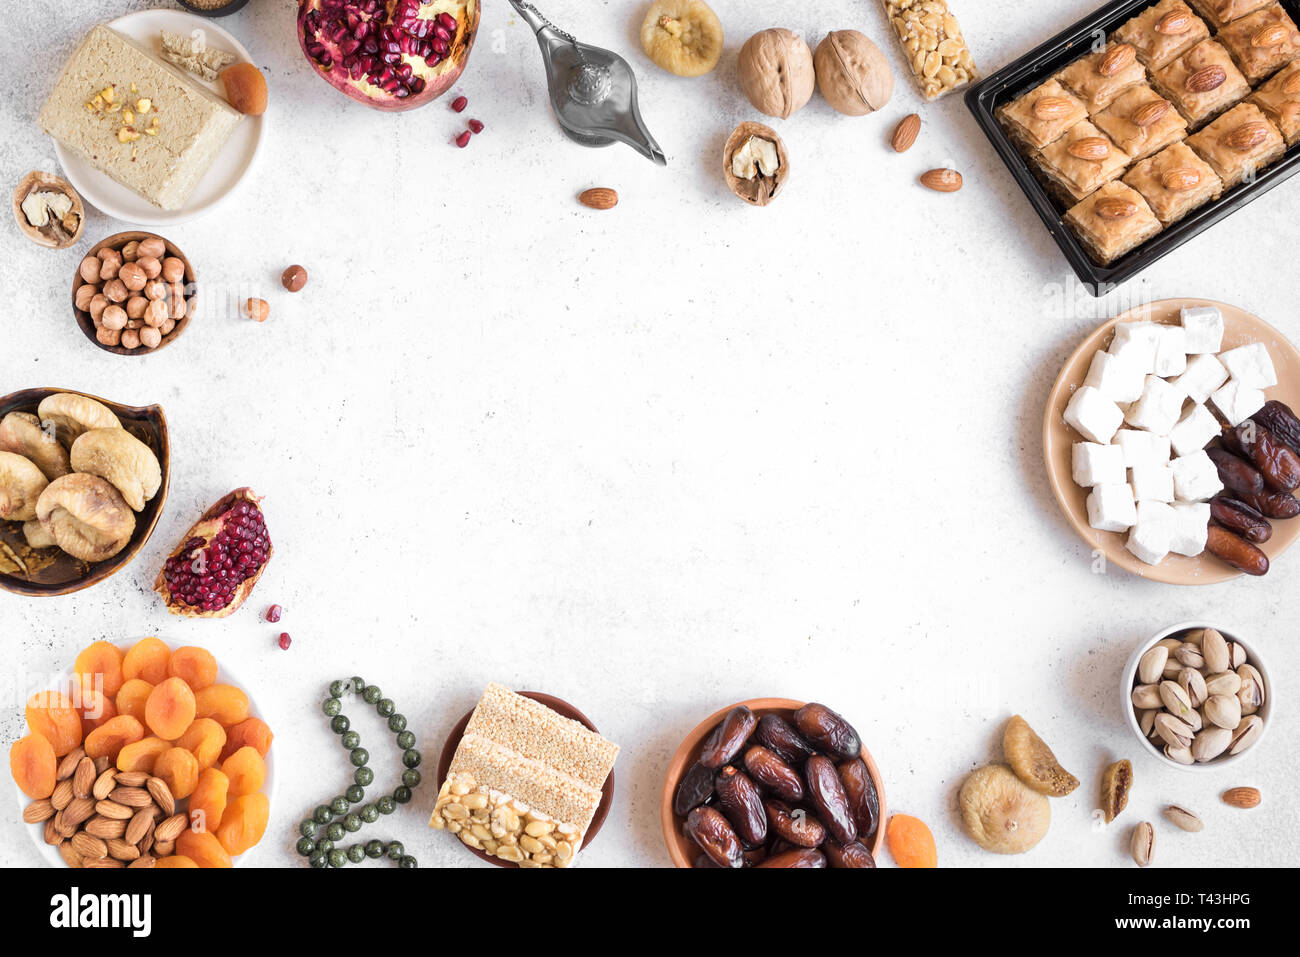 Assortment, set of Eastern, Arabic, Turkish sweets, nuts and dried fruits on white, top view, copy space. Holiday Middle Eastern traditional sweet foo - Stock Image